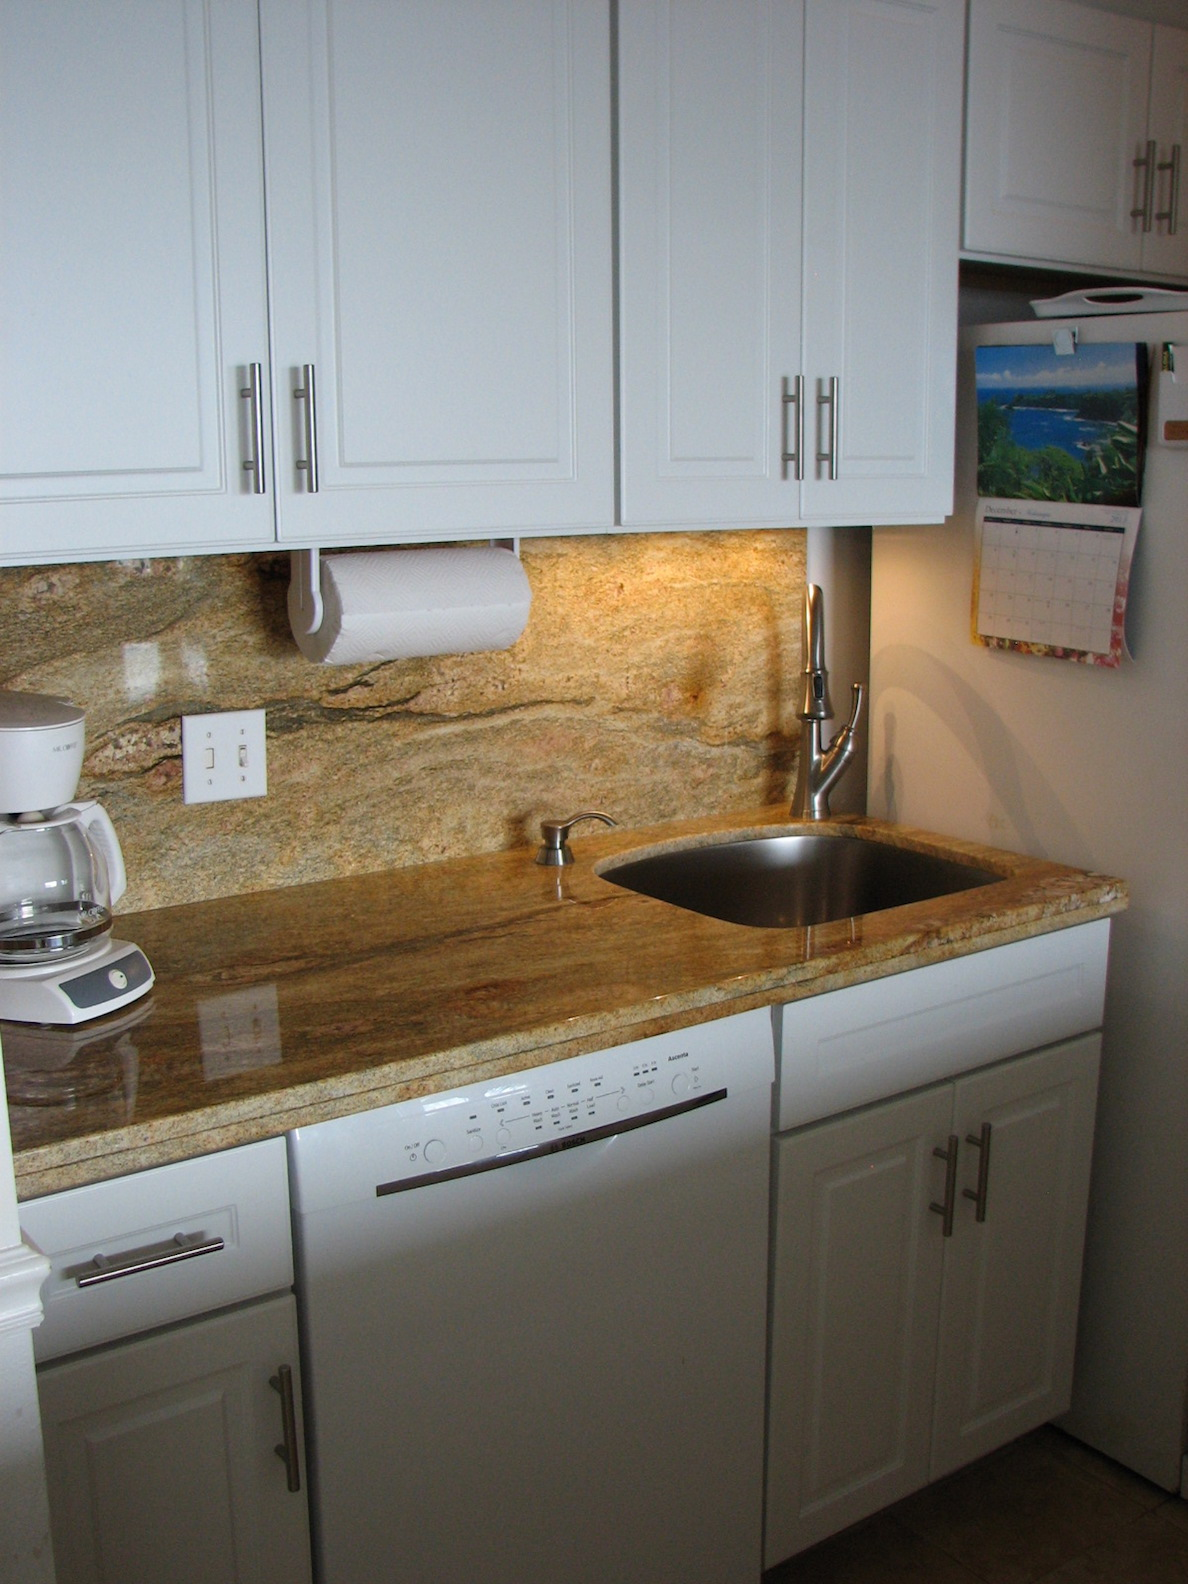 Brand new remodeled granite kitchen. Absolute oceanfront view for the chef.